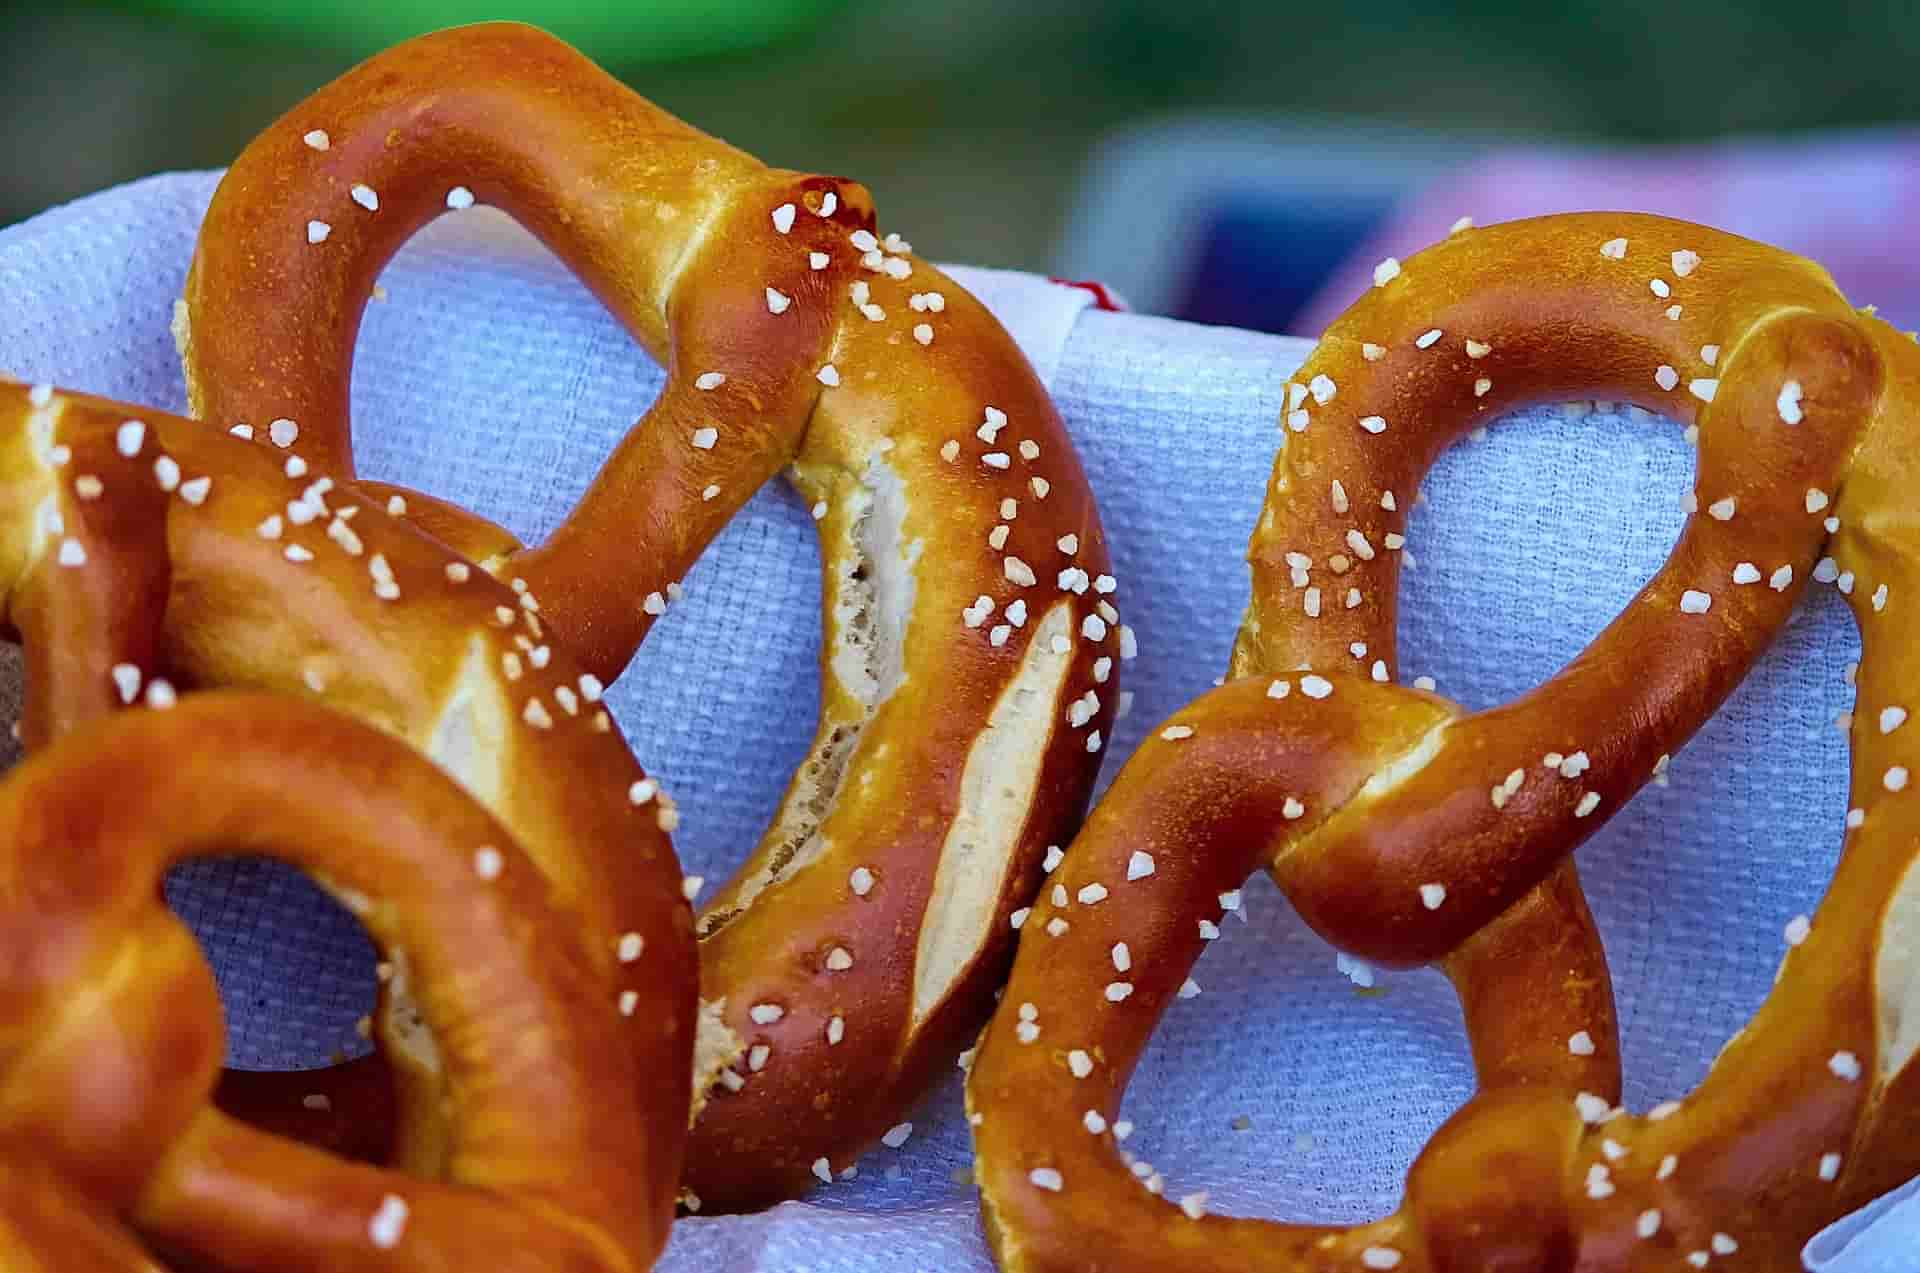 pretzels_drinking beer for breakfast_my life in germany-min